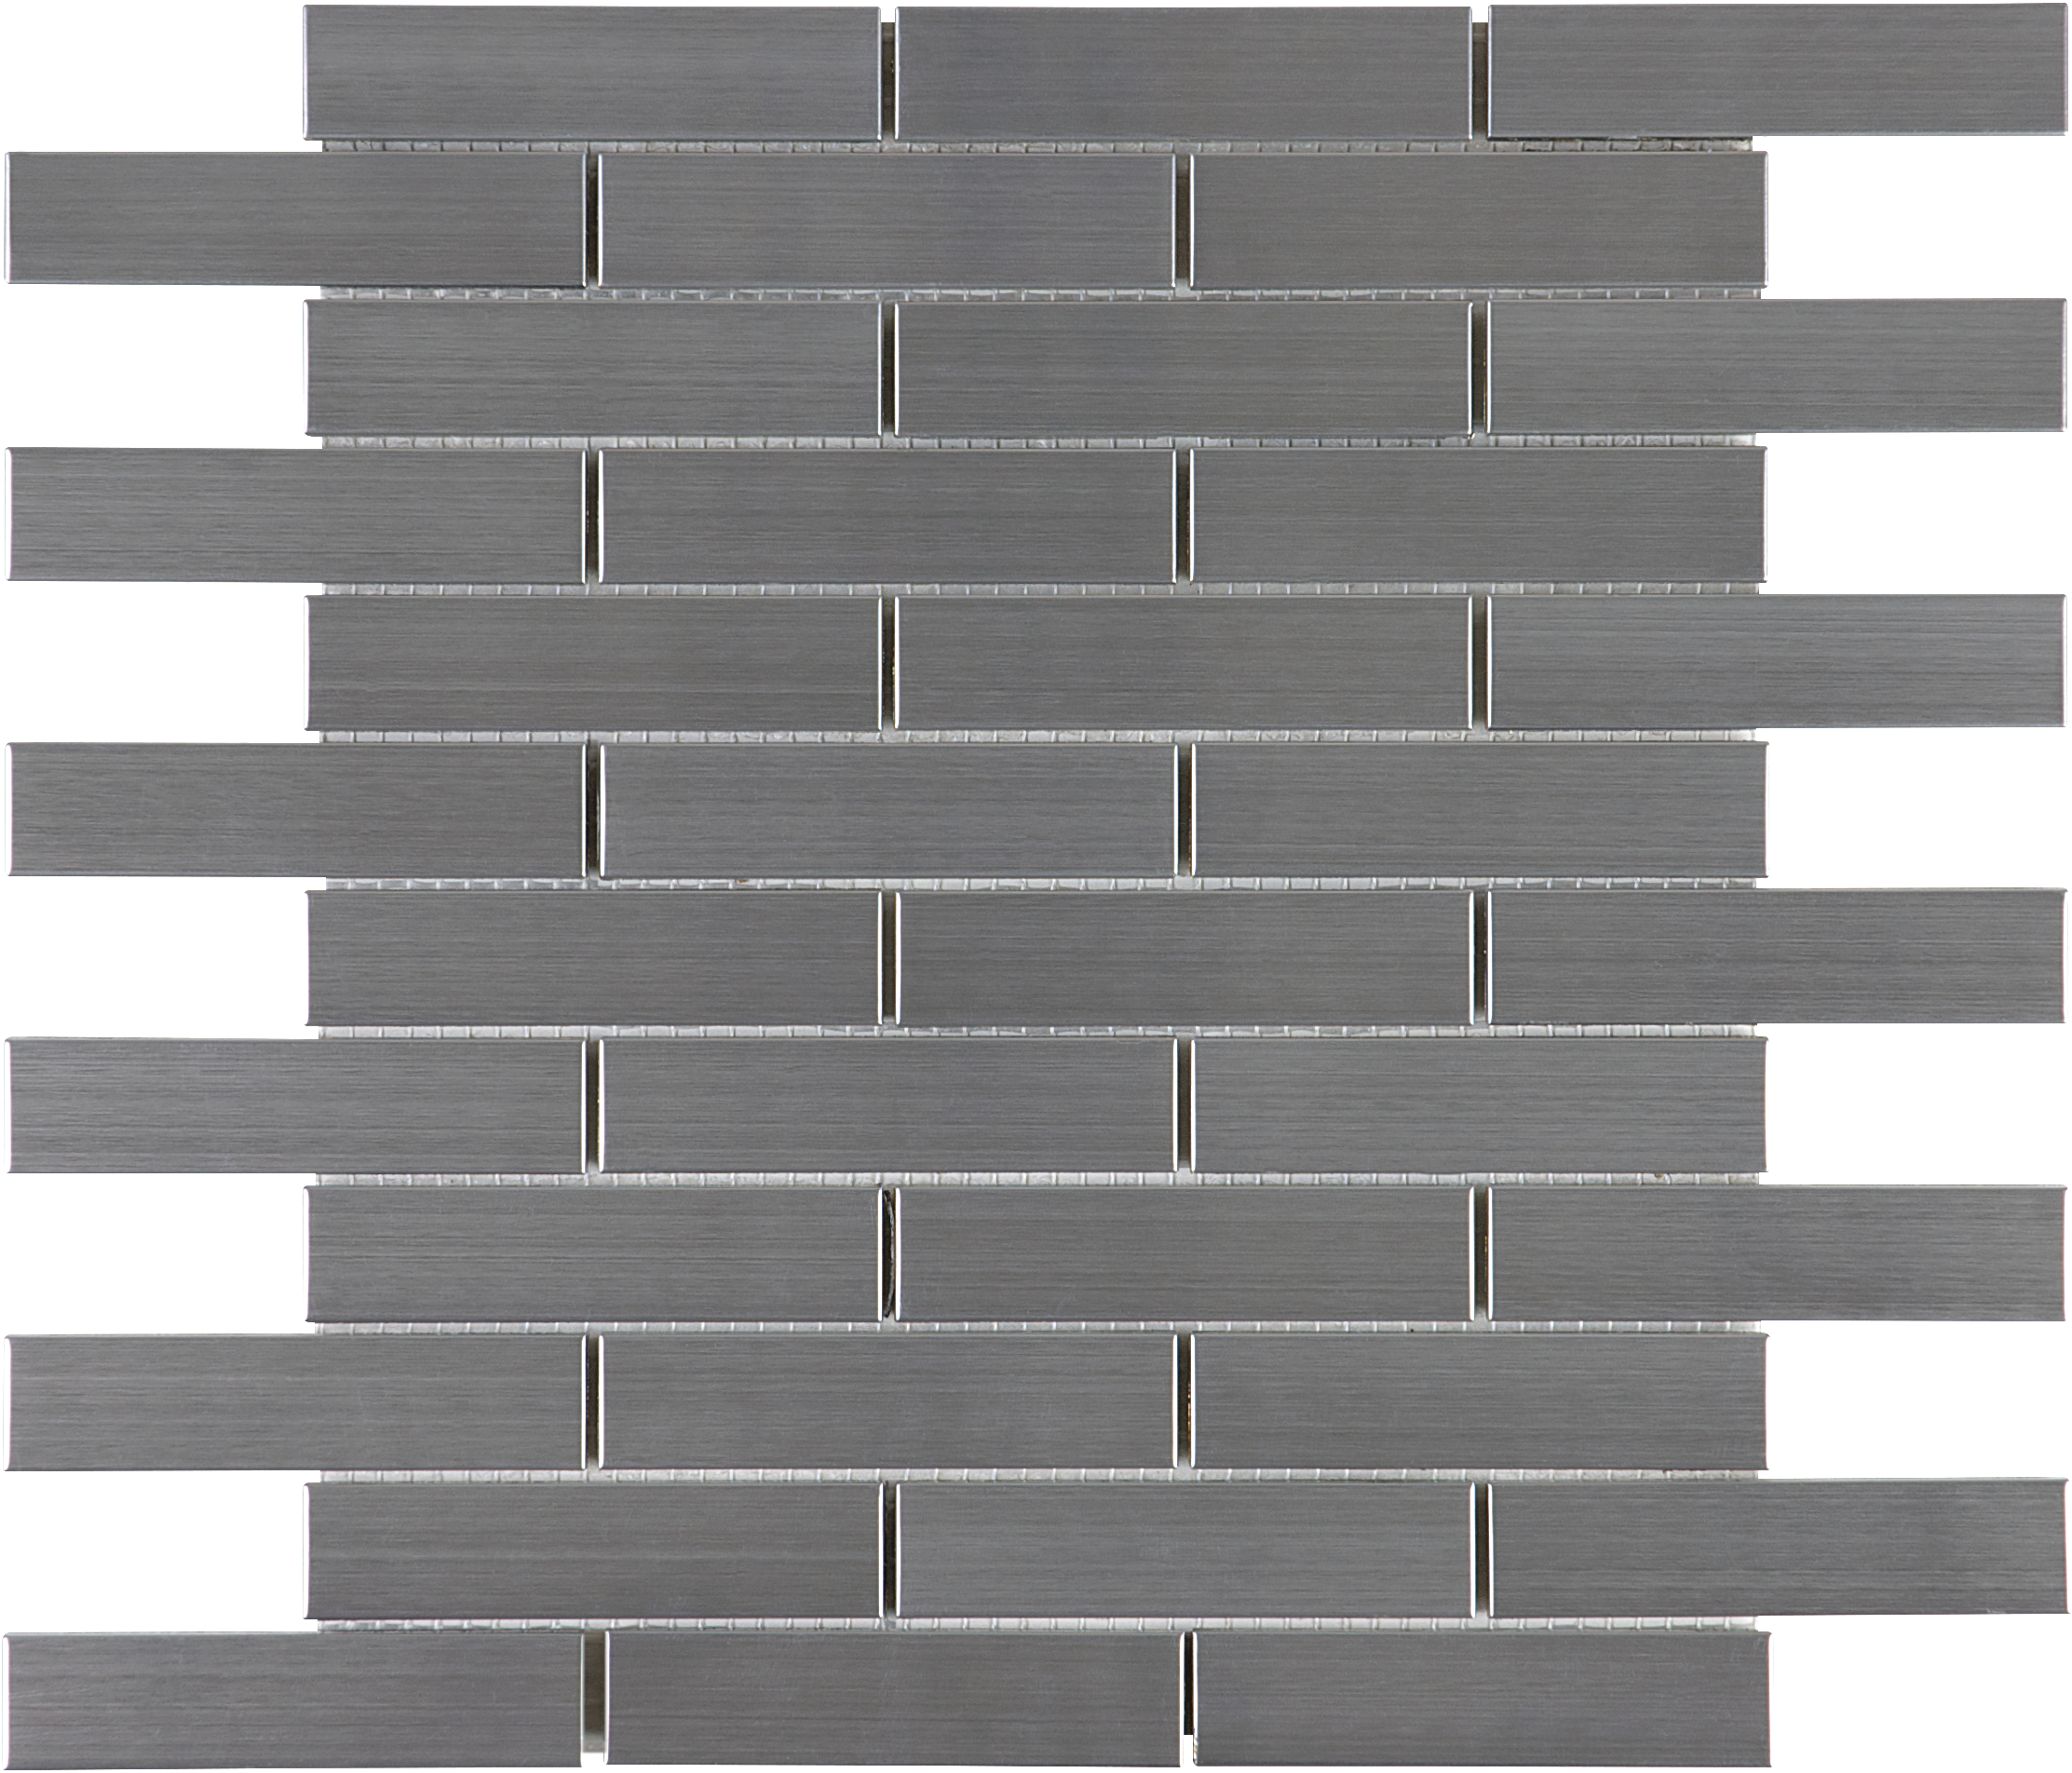 1/4 Stainless Steel Mosaic Tiles